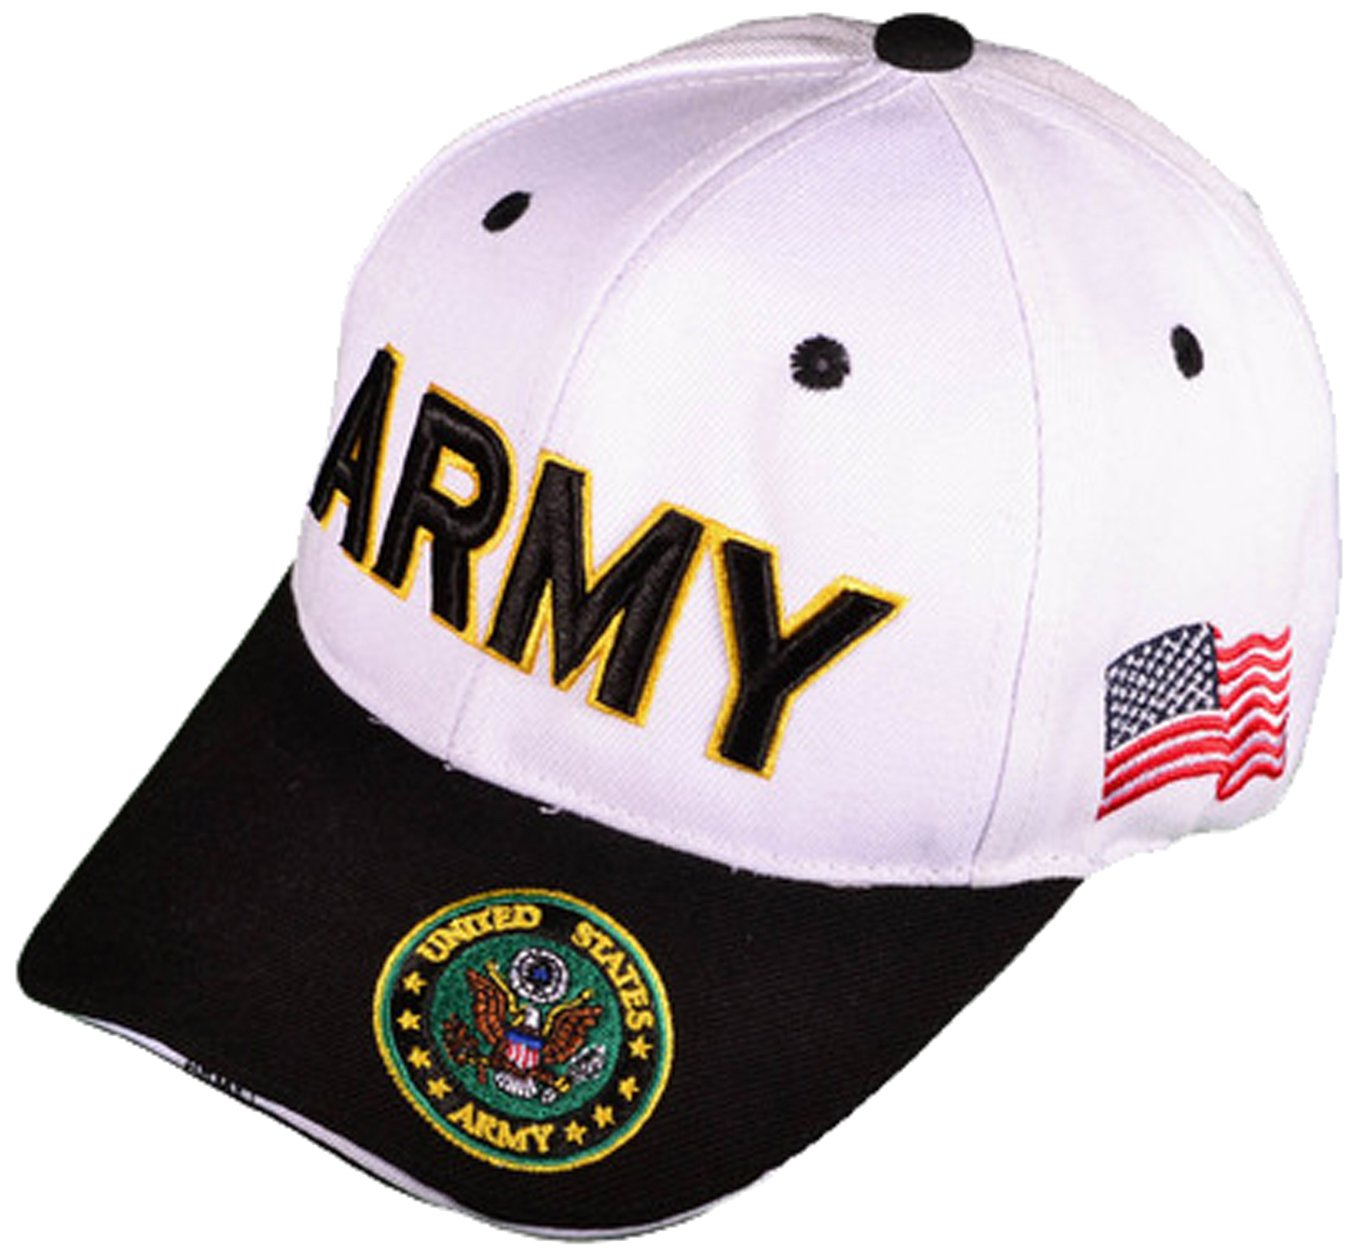 Buy Caps and Hats U.S. Army Veteran Military Baseball Cap Mens One Size  White 0c3dcbfa4437